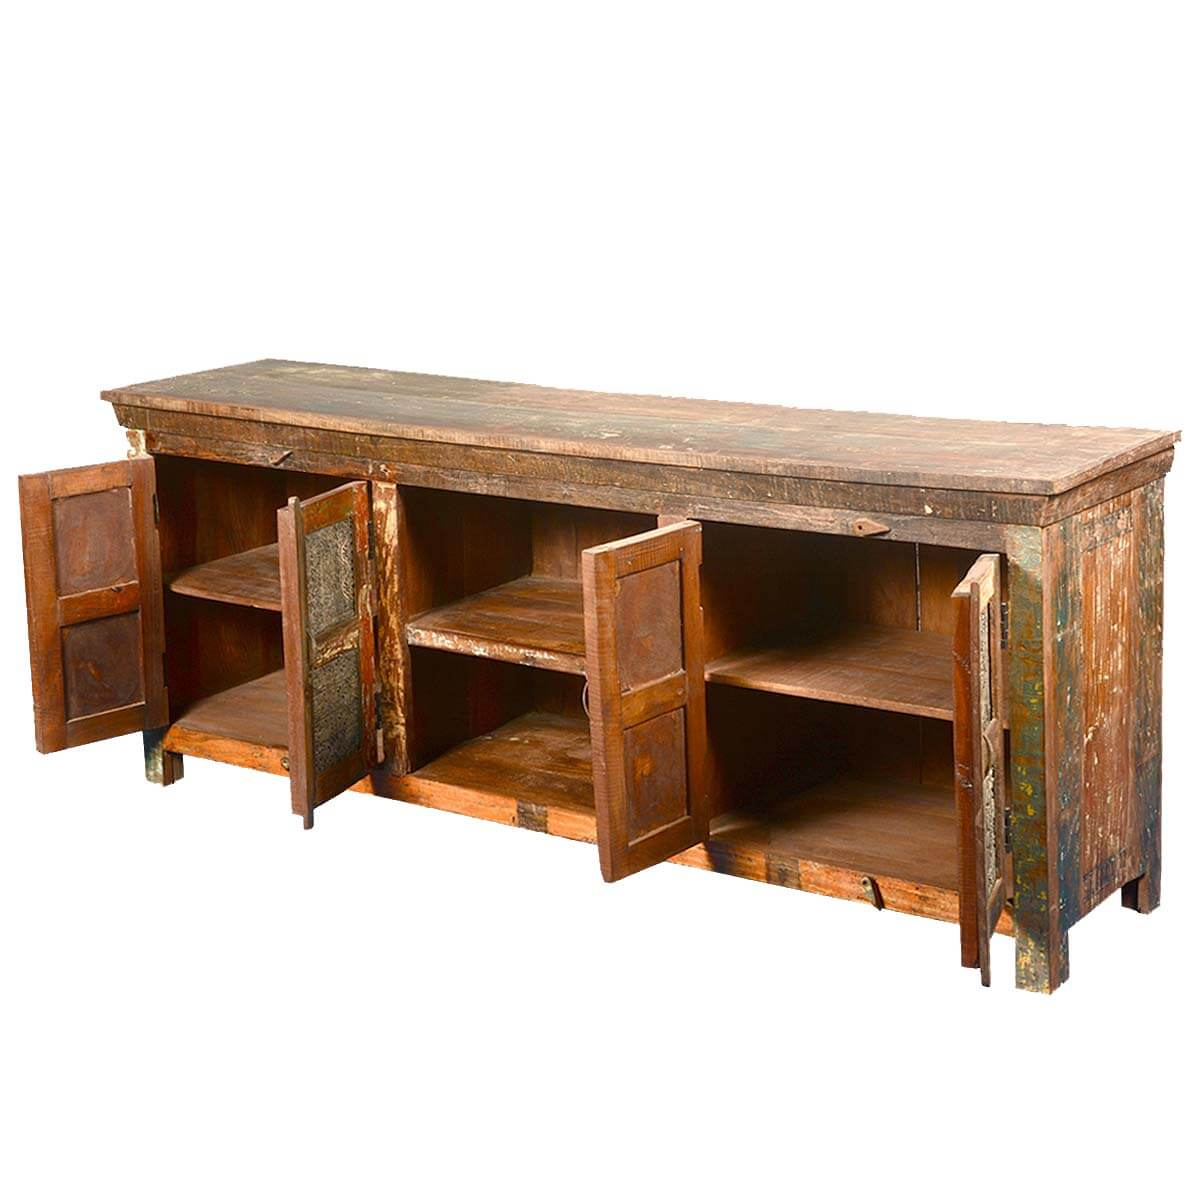 Reclaimed wood furniture rustic wooden windows tv media stand